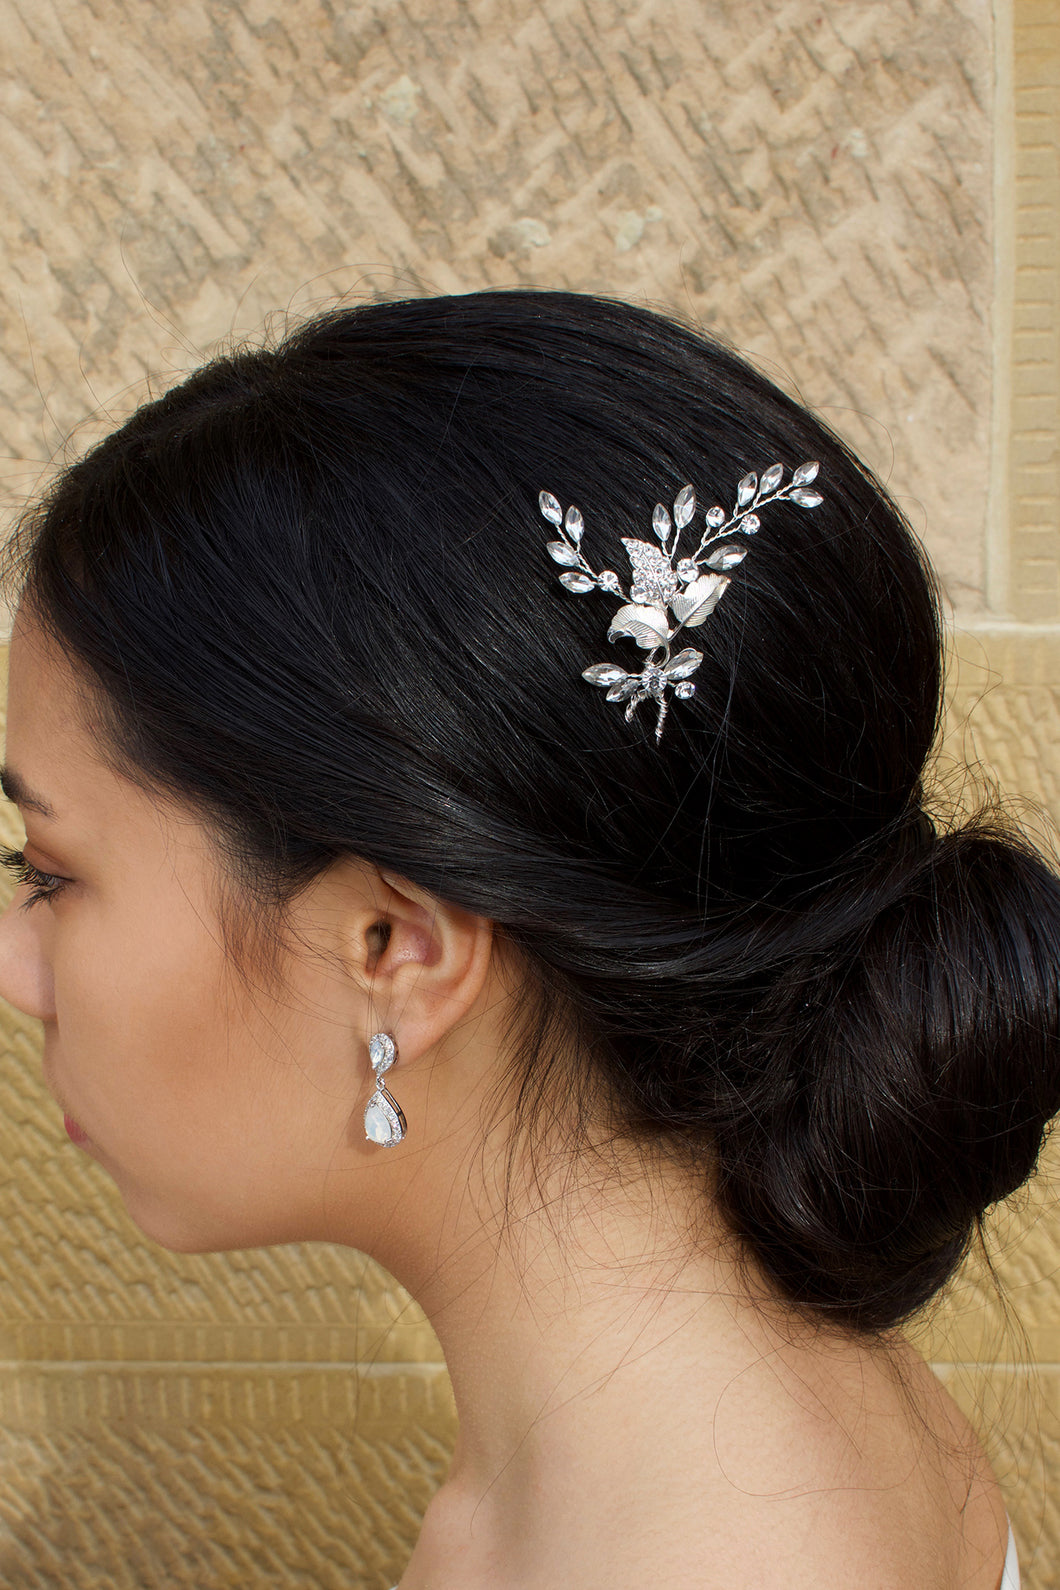 A Dark hair model wears a Silver Bridal Hairpin in the side of her hair with a stone wall background